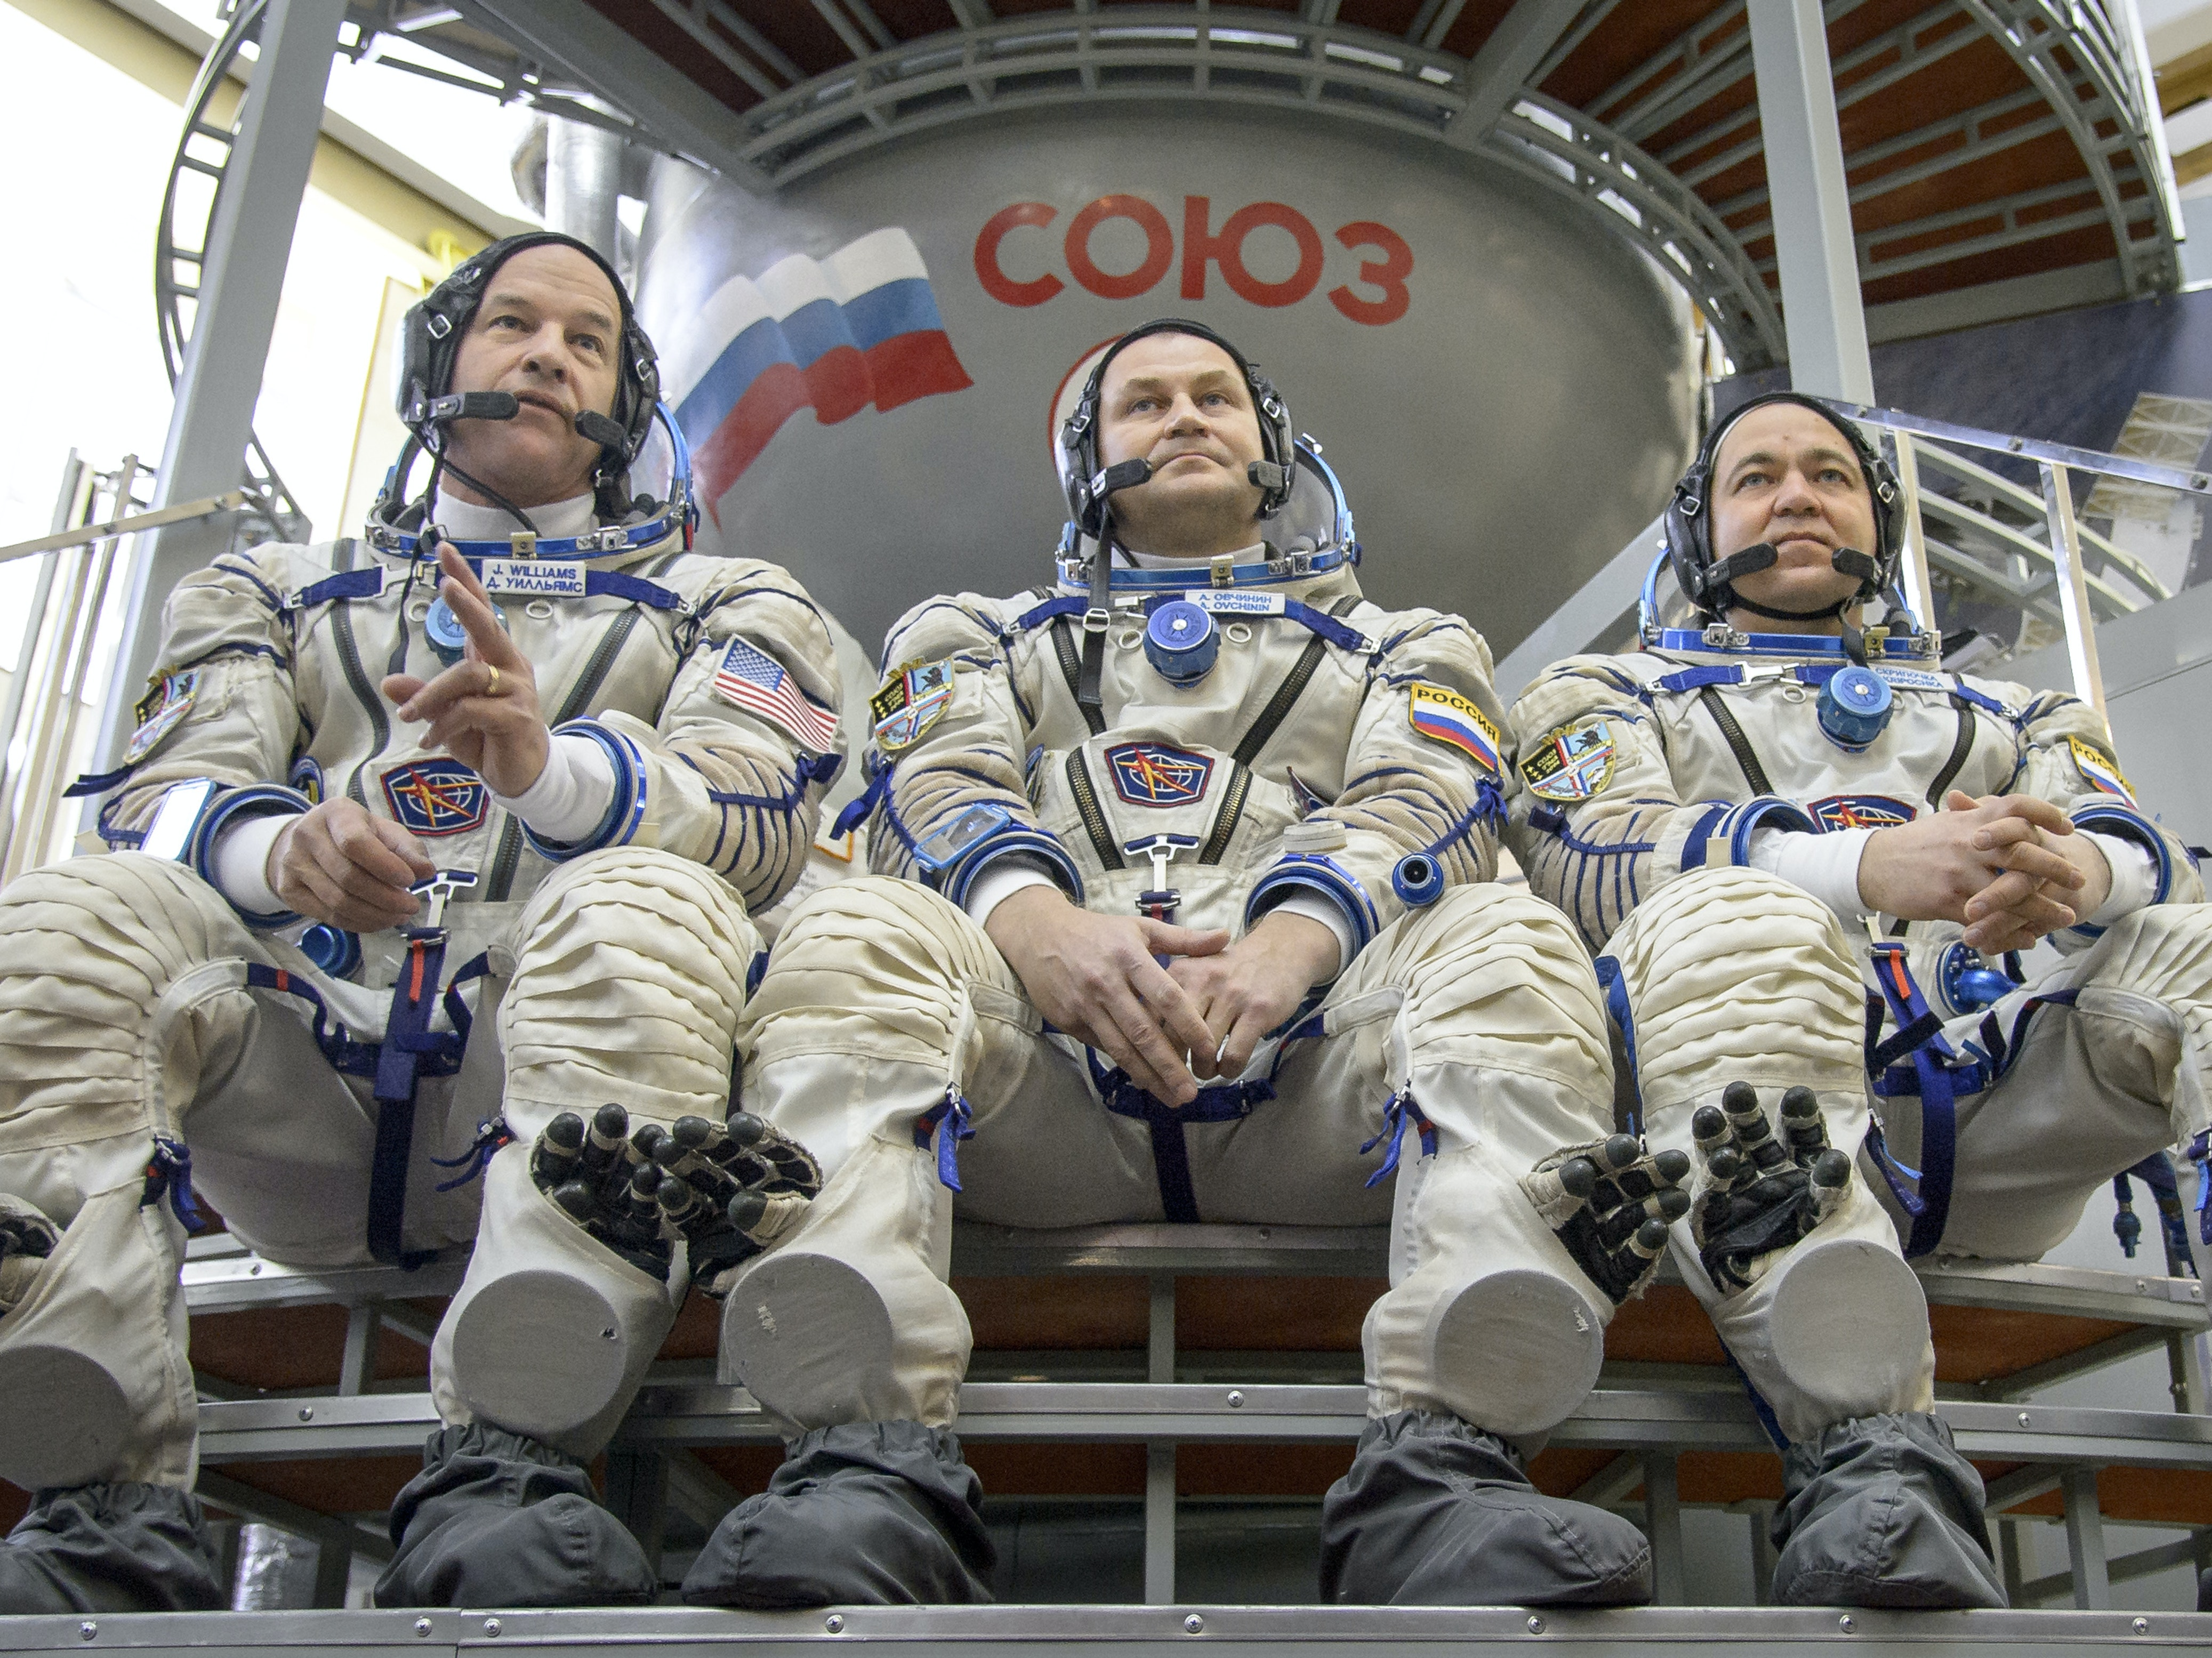 In this handout provided by NASA, Expedition 47 crew members: NASA astronaut Jeff Williams, left, Russian cosmonauts Oleg Skripochka, and Alexei Ovchinin of Roscosmos answer questions from the press outside the Soyuz simulator ahead of their final Soyuz qualification exams.